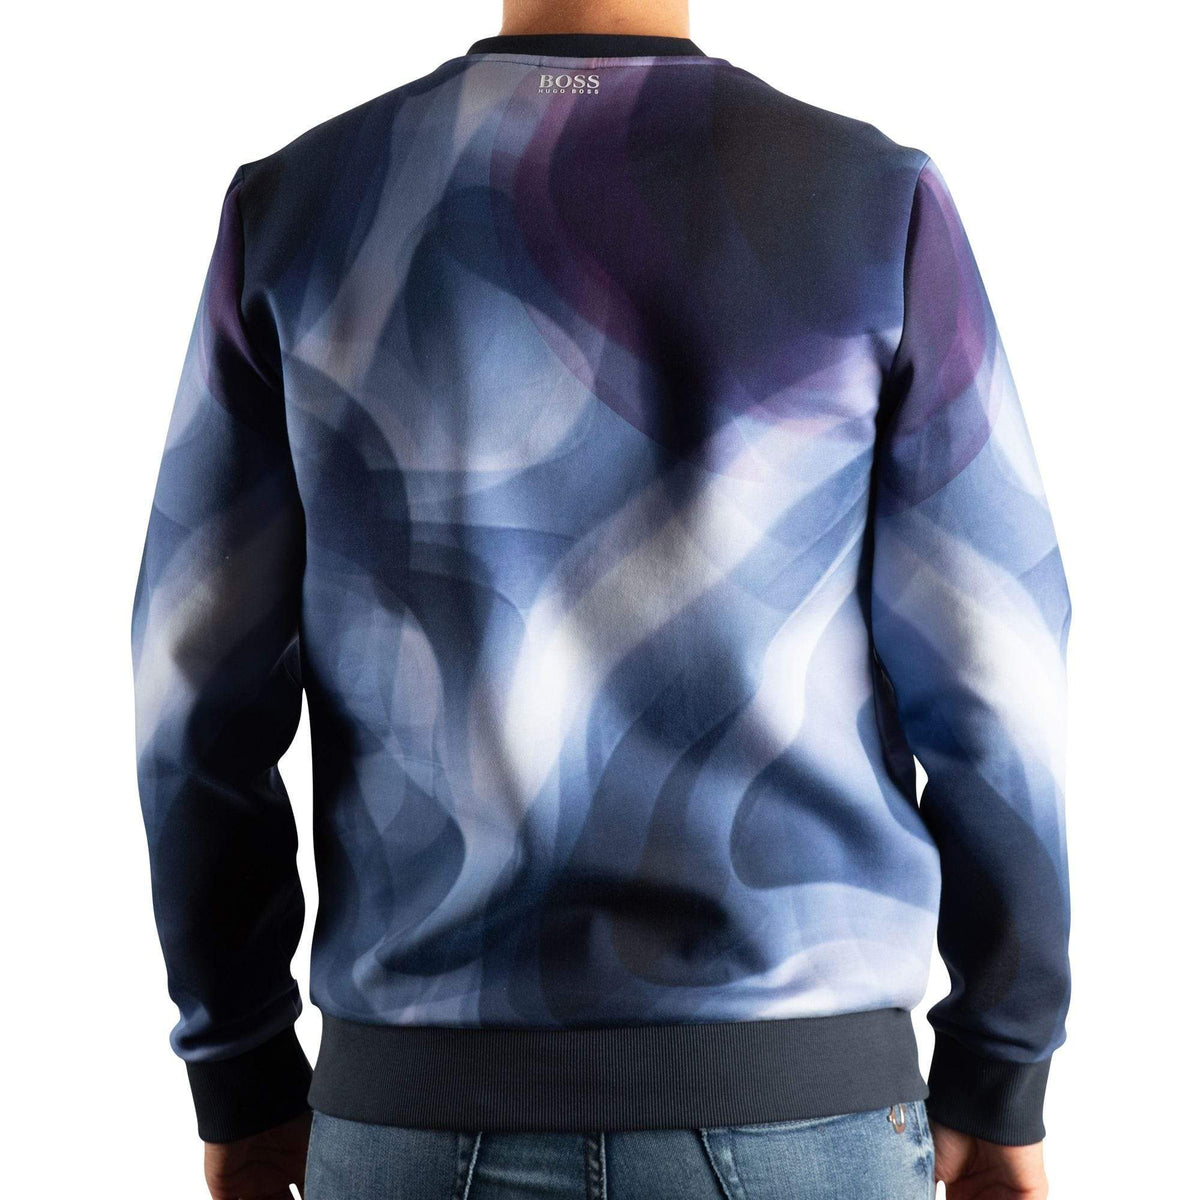 BOSS Slim-Fit Sweatshirt With All-Over Digital Print